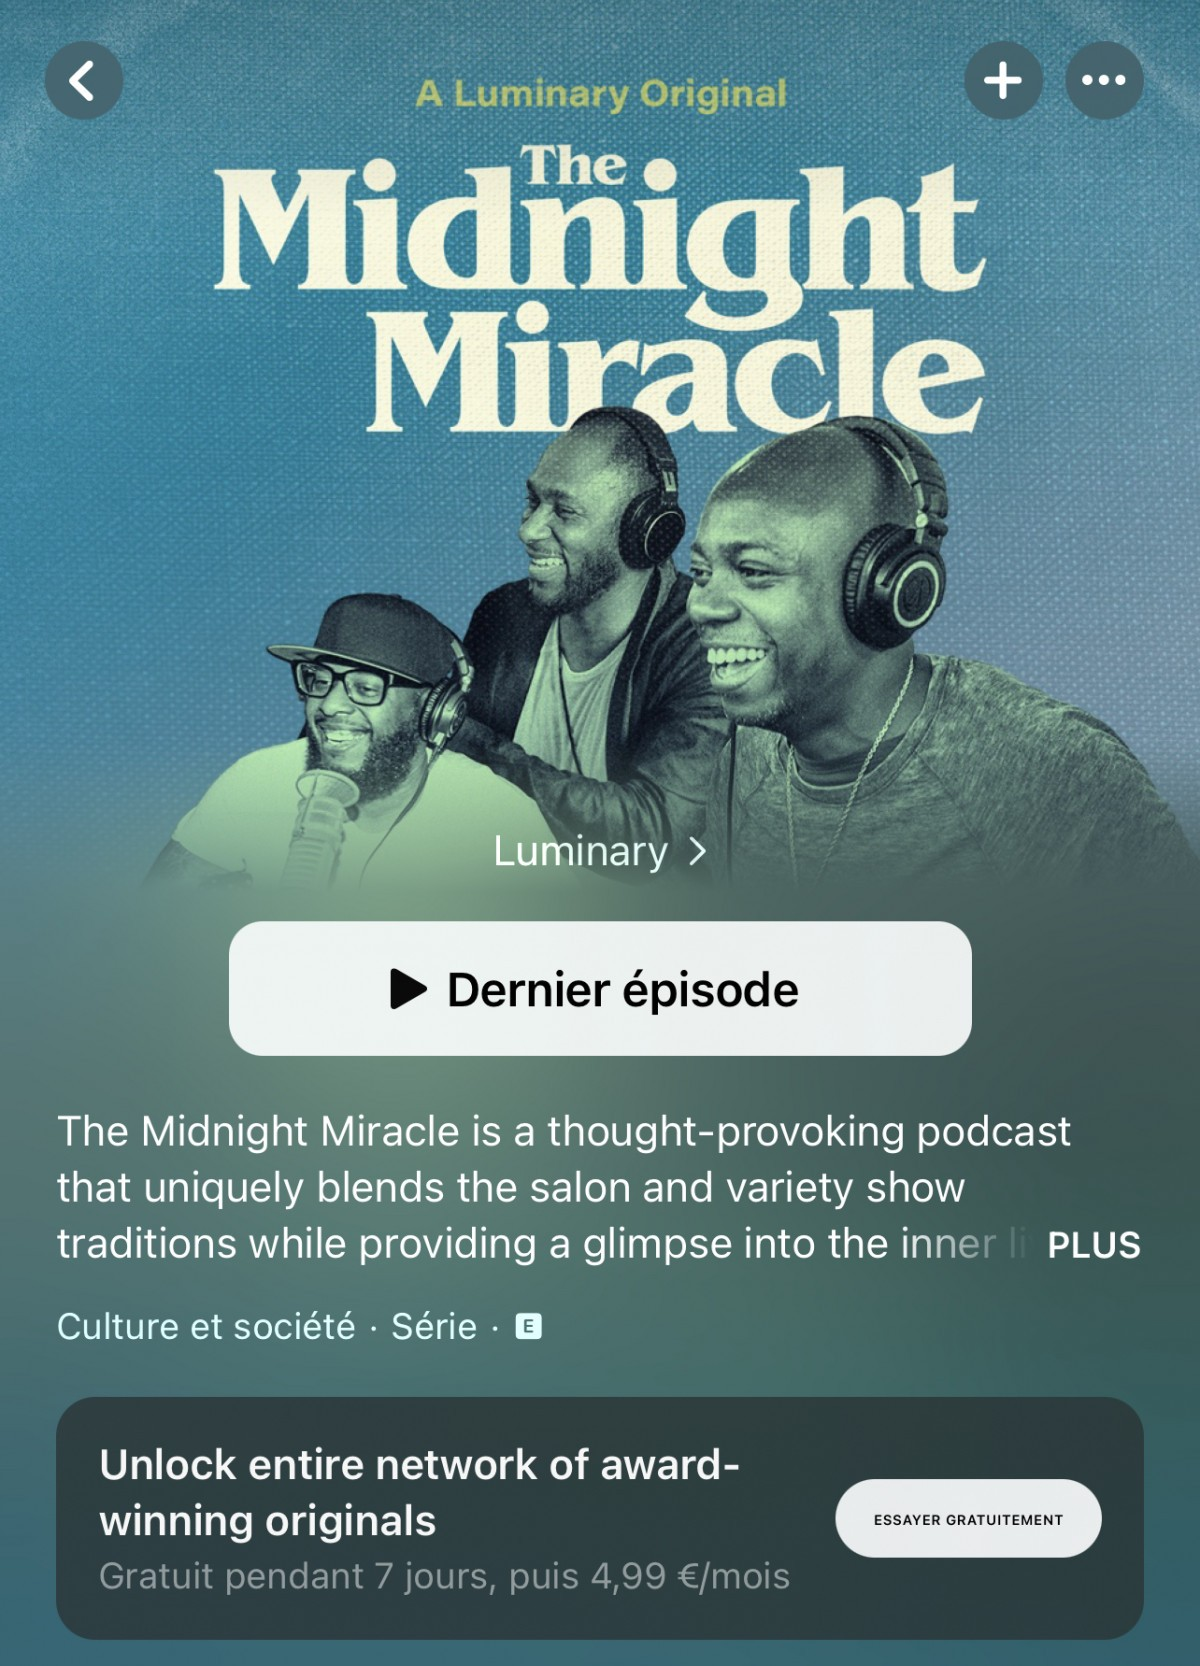 interface du podcast Midnight Miracle sur Apple Podcasts